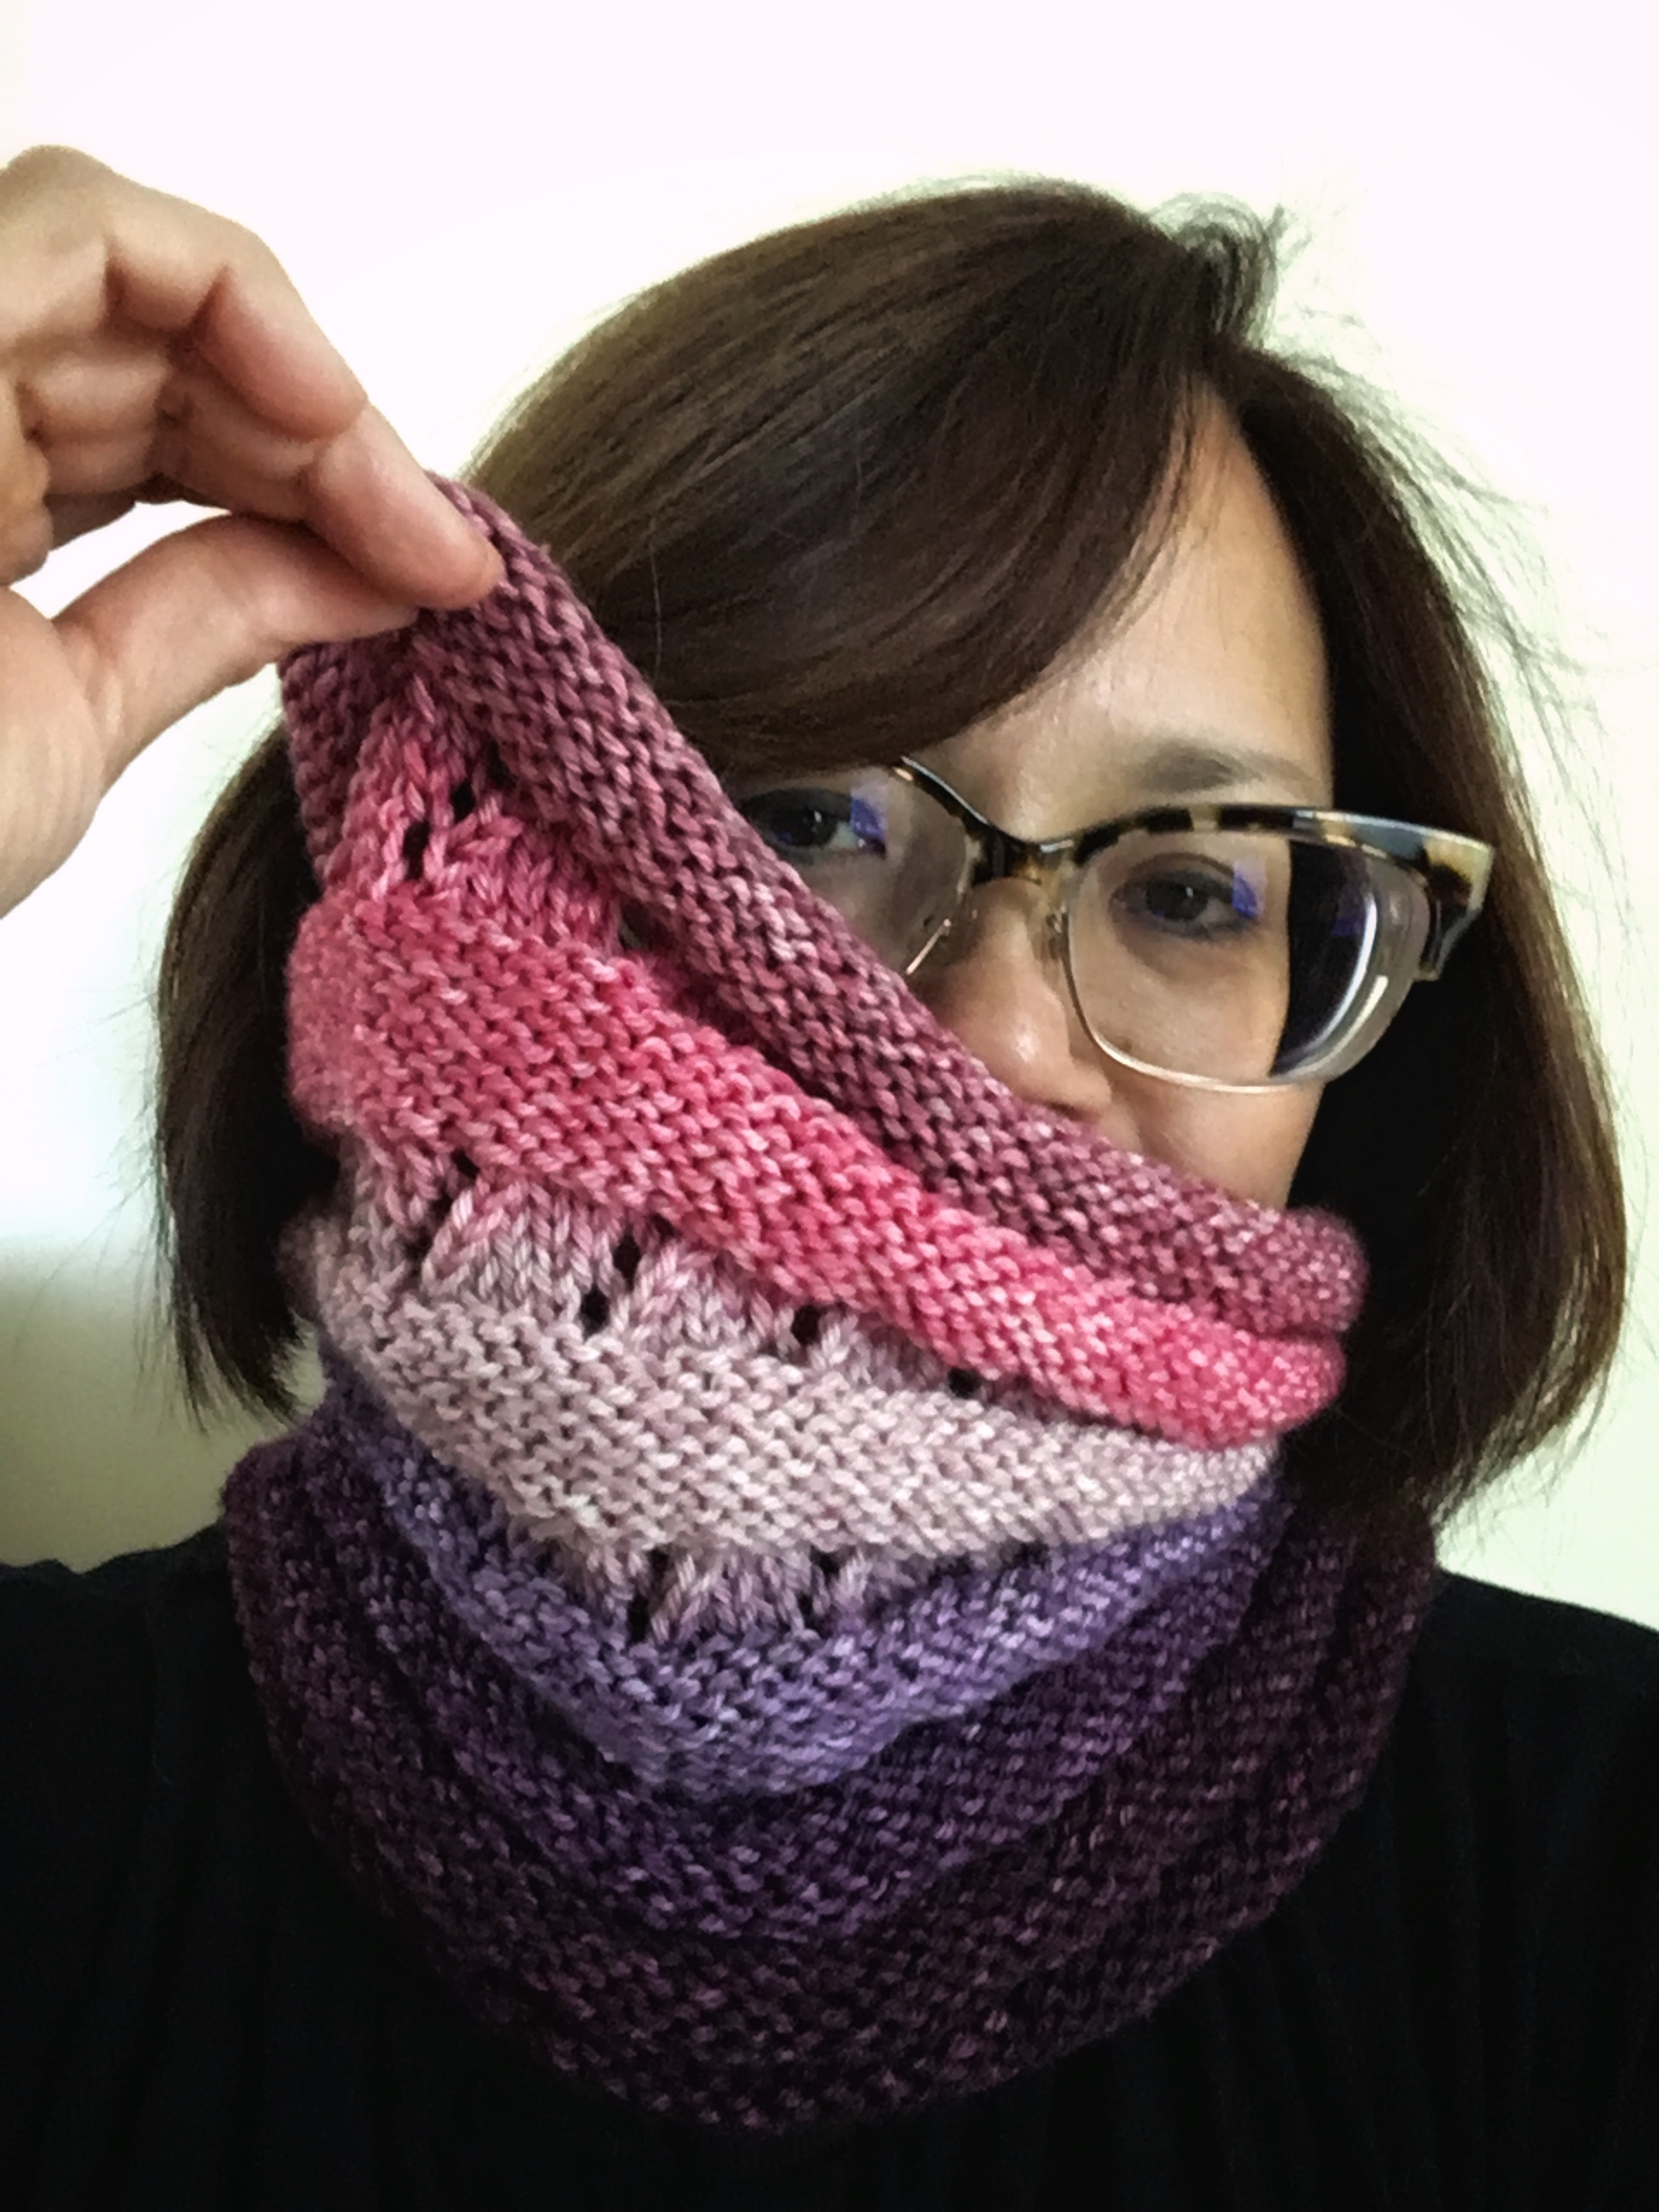 Pattern design pdxknitterati its a quick and easy gift knit even if the gift recipient is yourself as always newsletter subscribers have a coupon code for 20 off fandeluxe Images